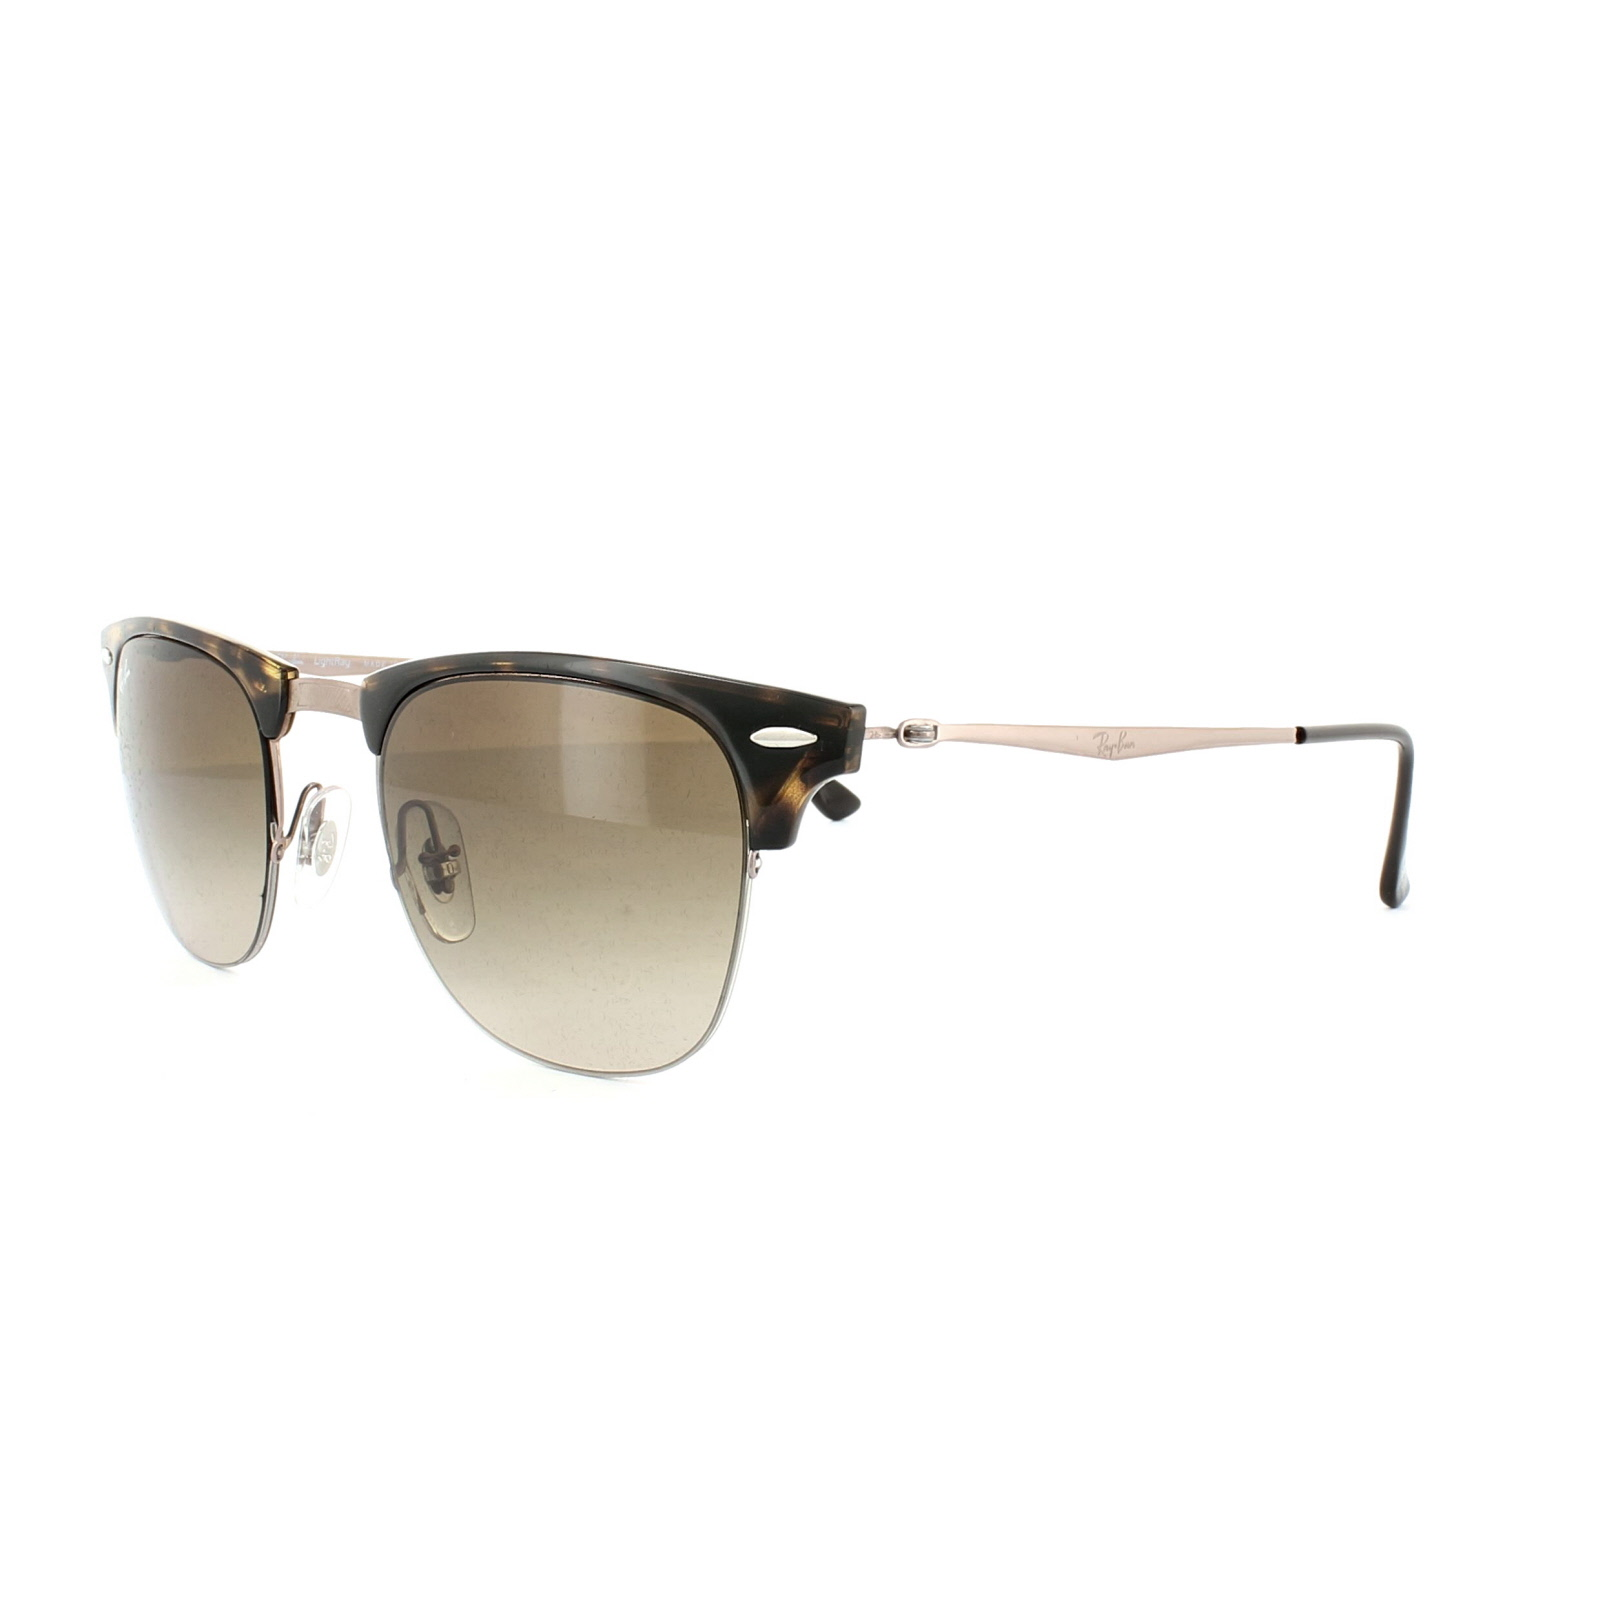 9e7b88051 Cheap Ray-Ban Clubmaster Light Ray 8056 Sunglasses - Discounted ...